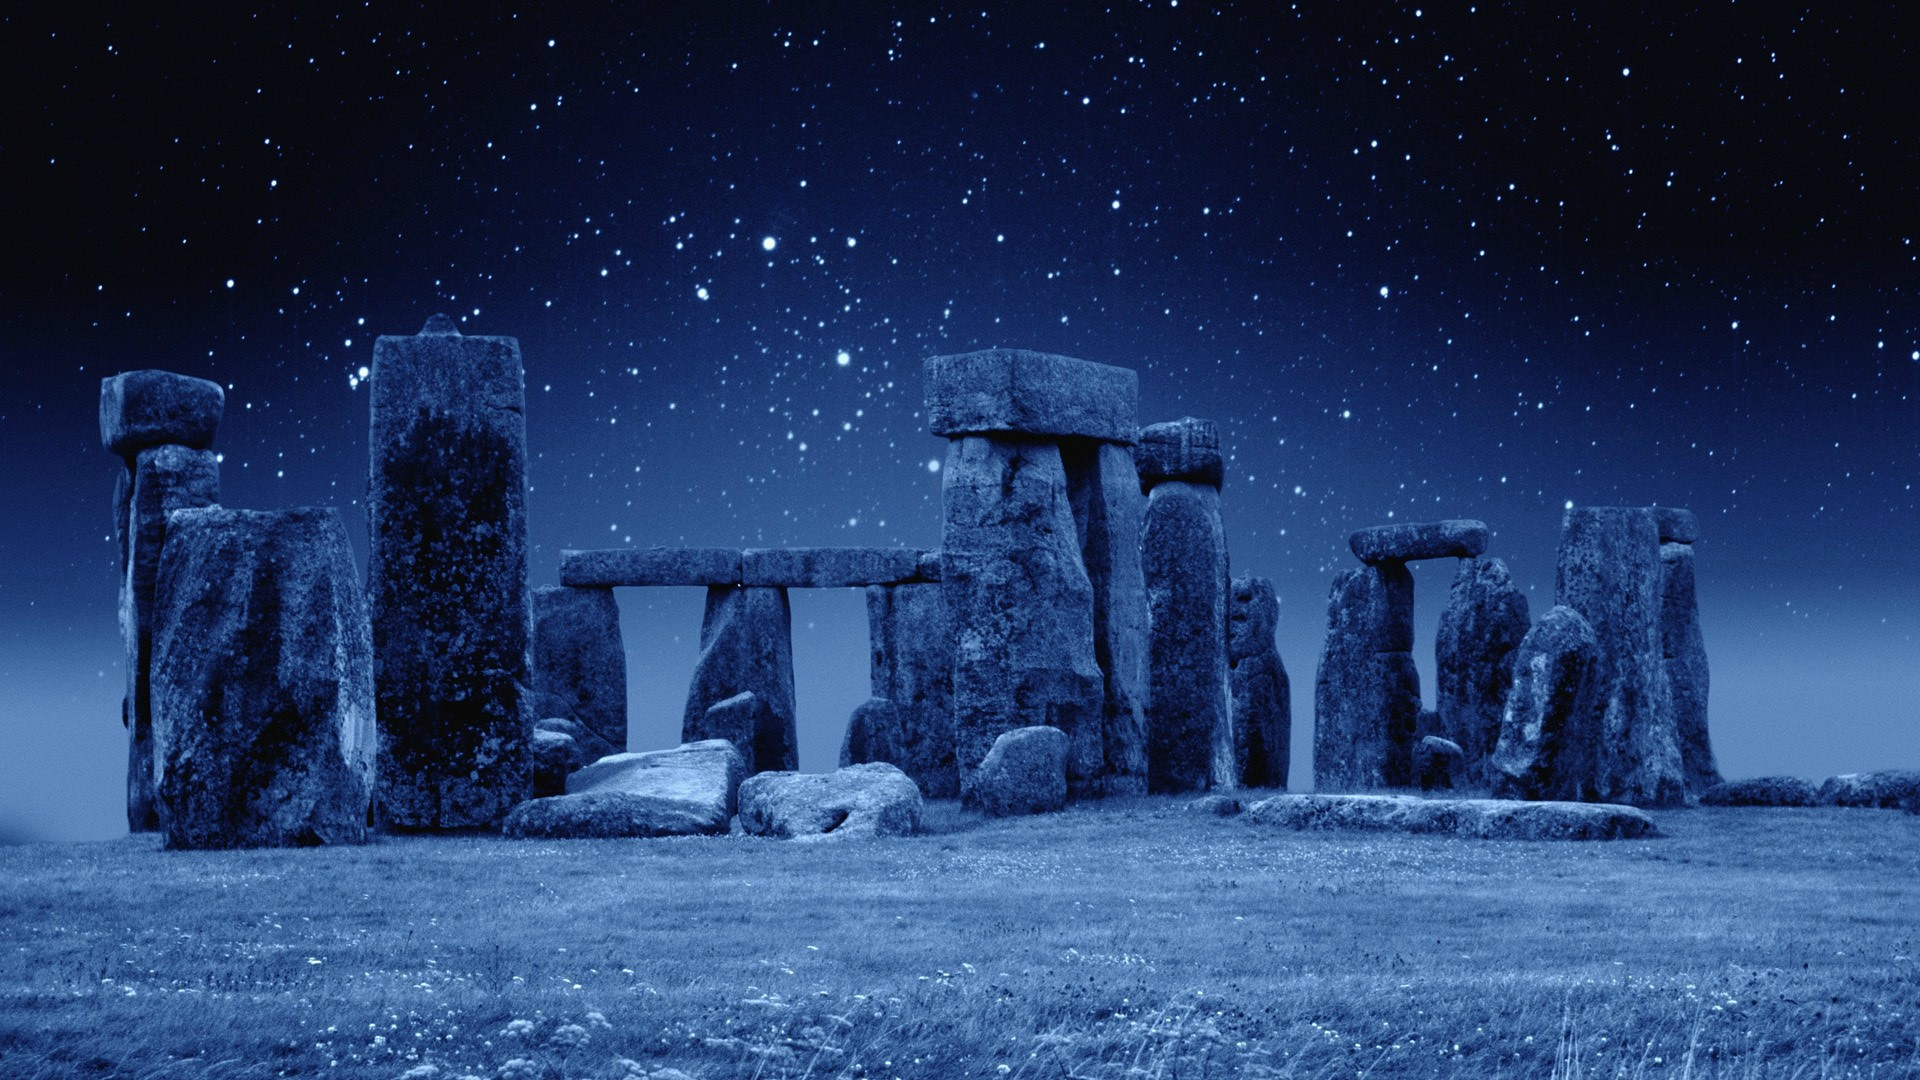 Stonehenge At Night [1920x1080] wallpapers 1920x1080